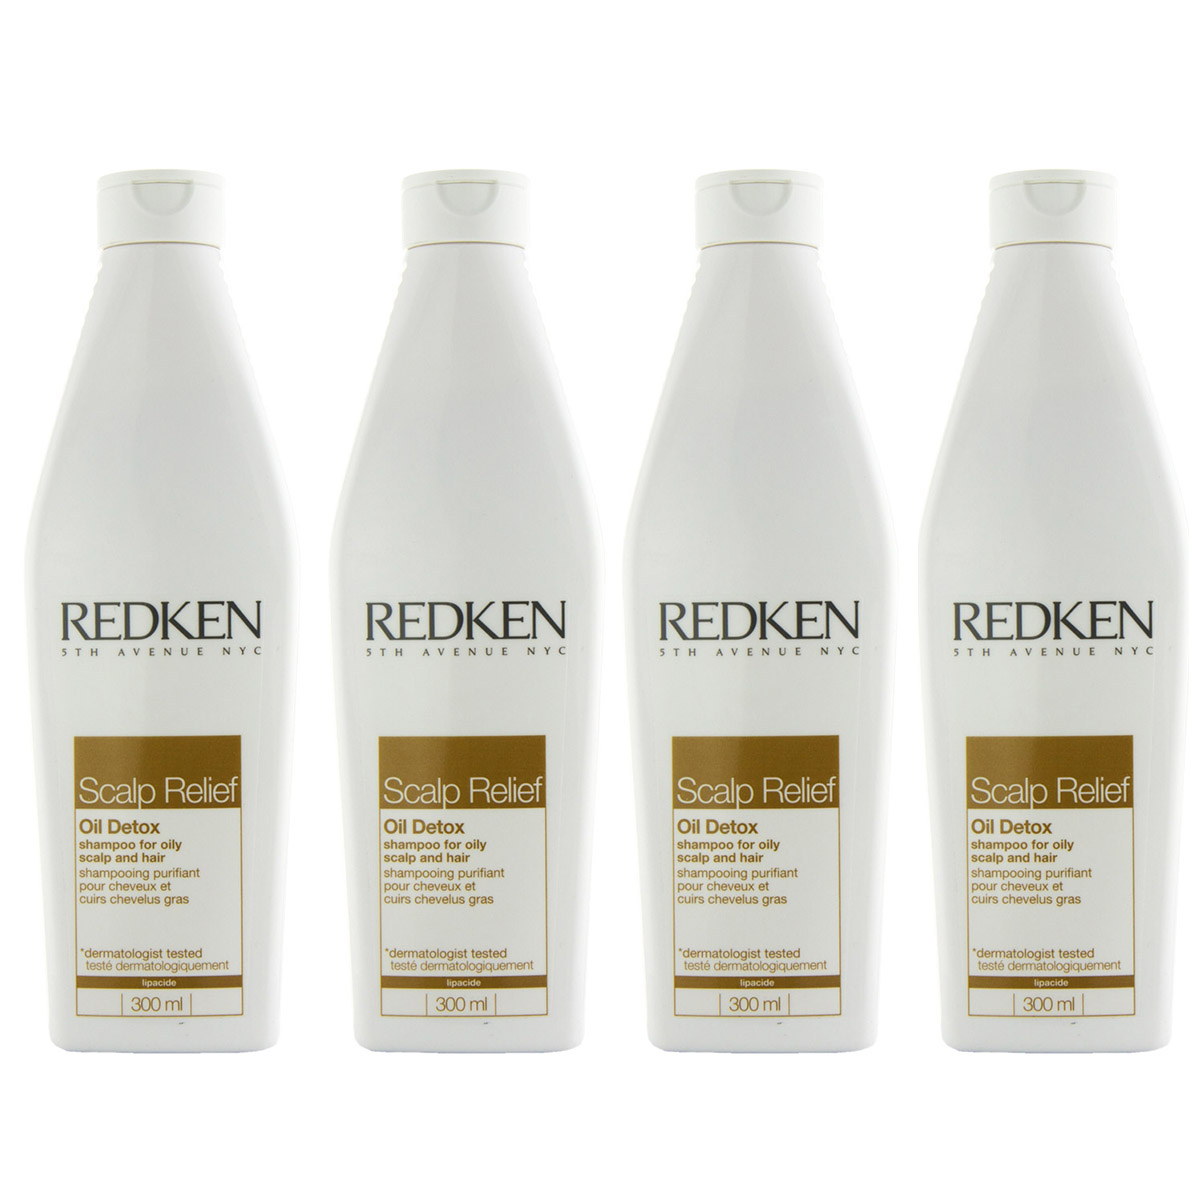 Redken Scalp Relief Oil Detox Shampoo 4 x 300 ml